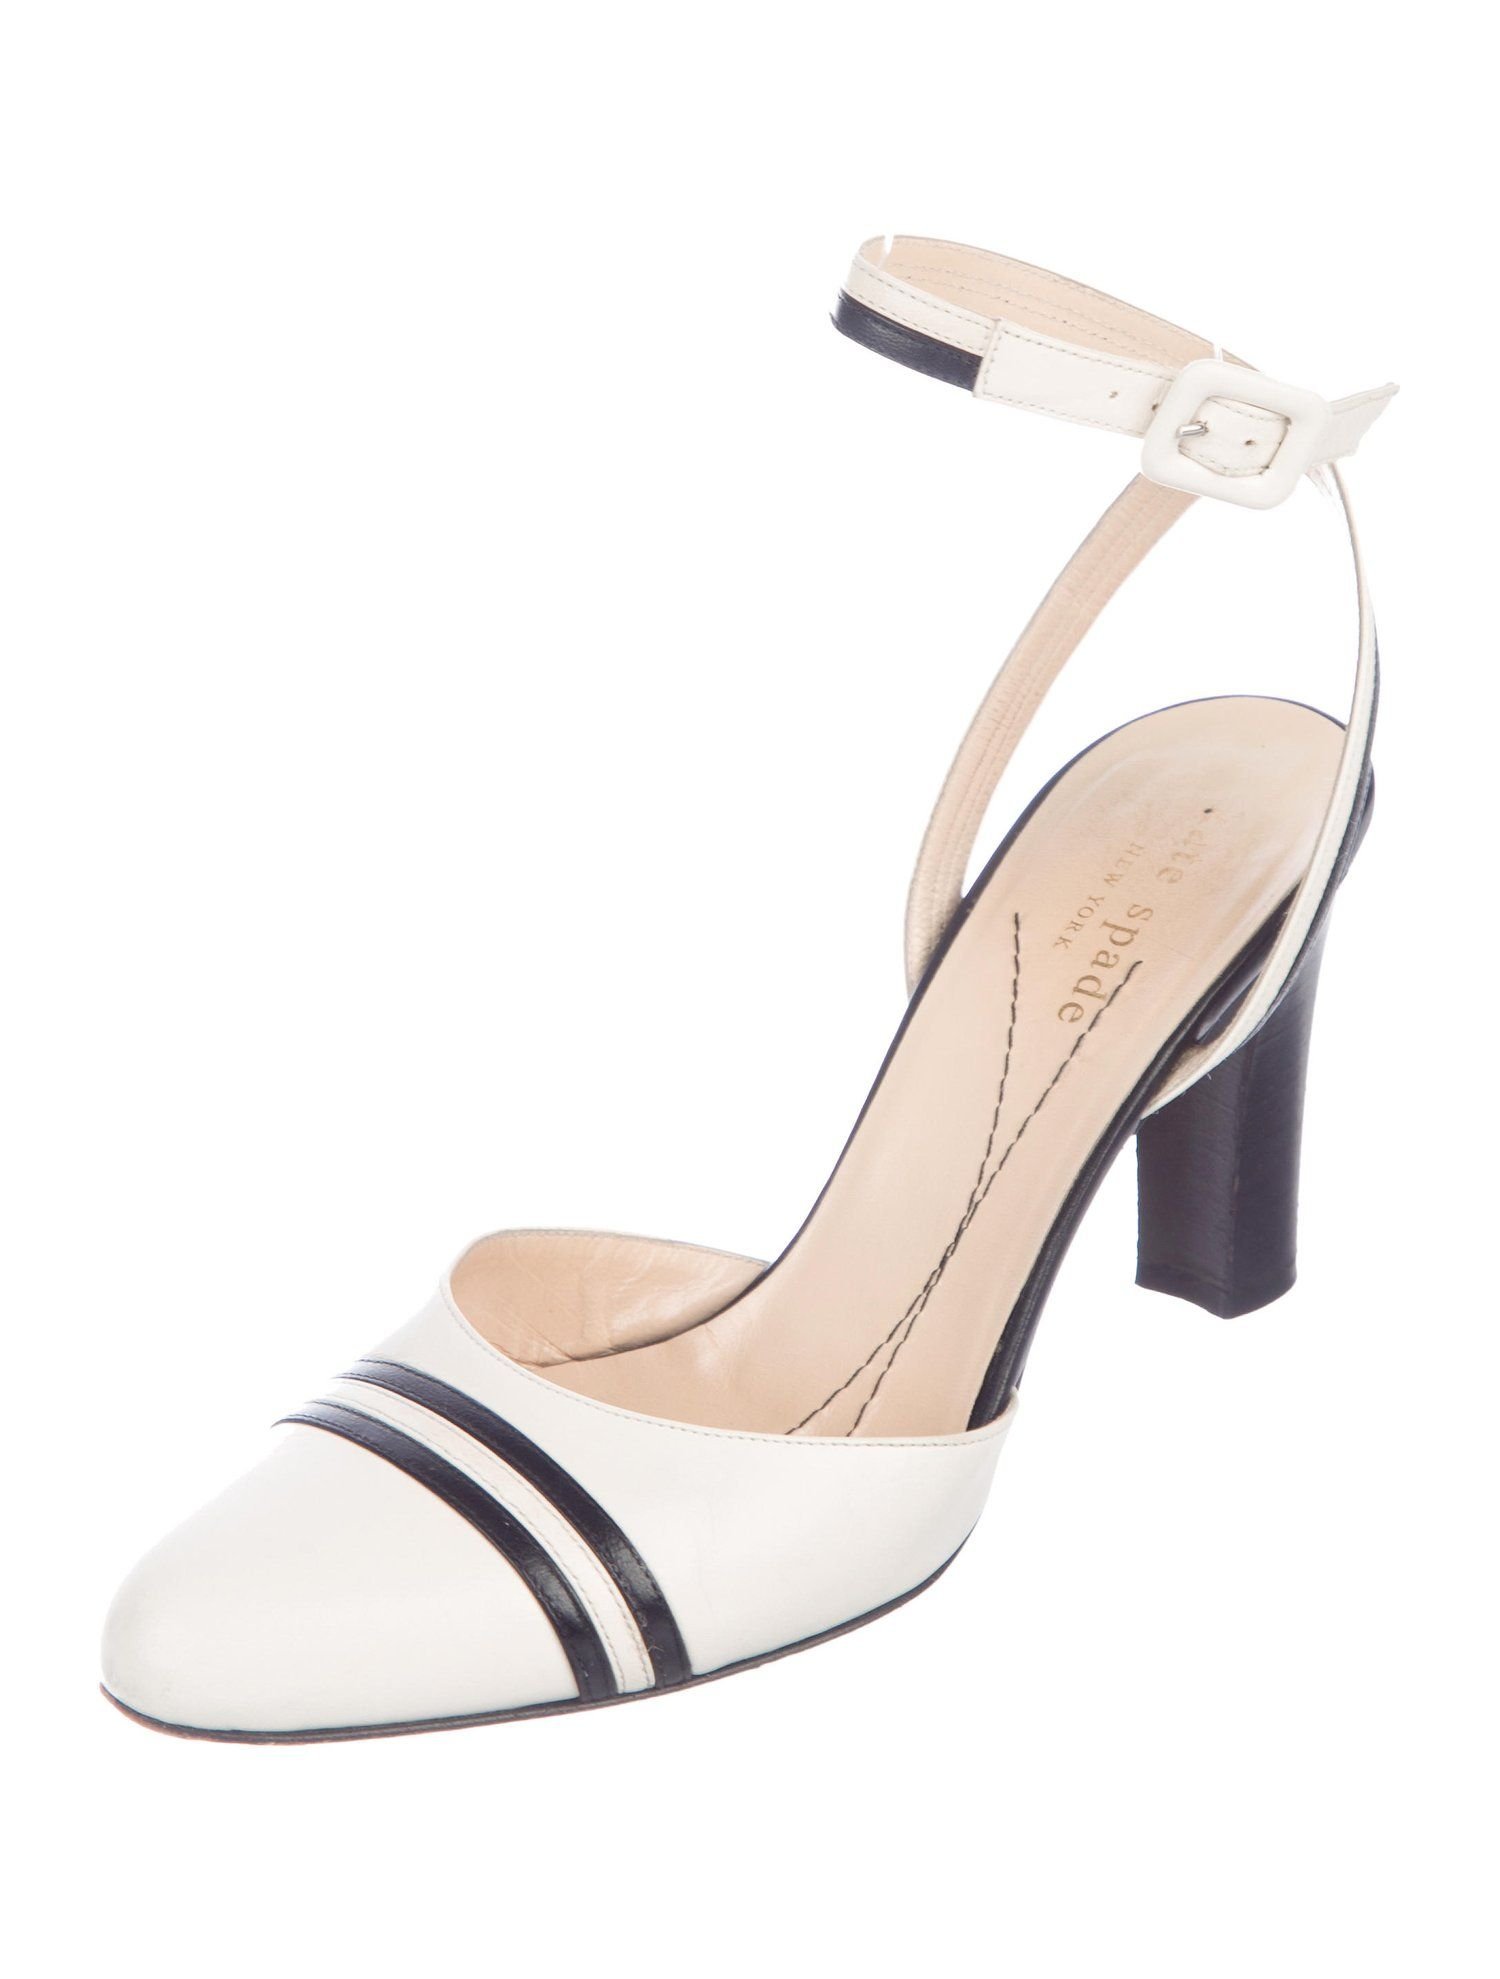 16d100367dc Kate Spade New York Leather Ankle-Strap Pumps - Shoes - WKA90348 ...